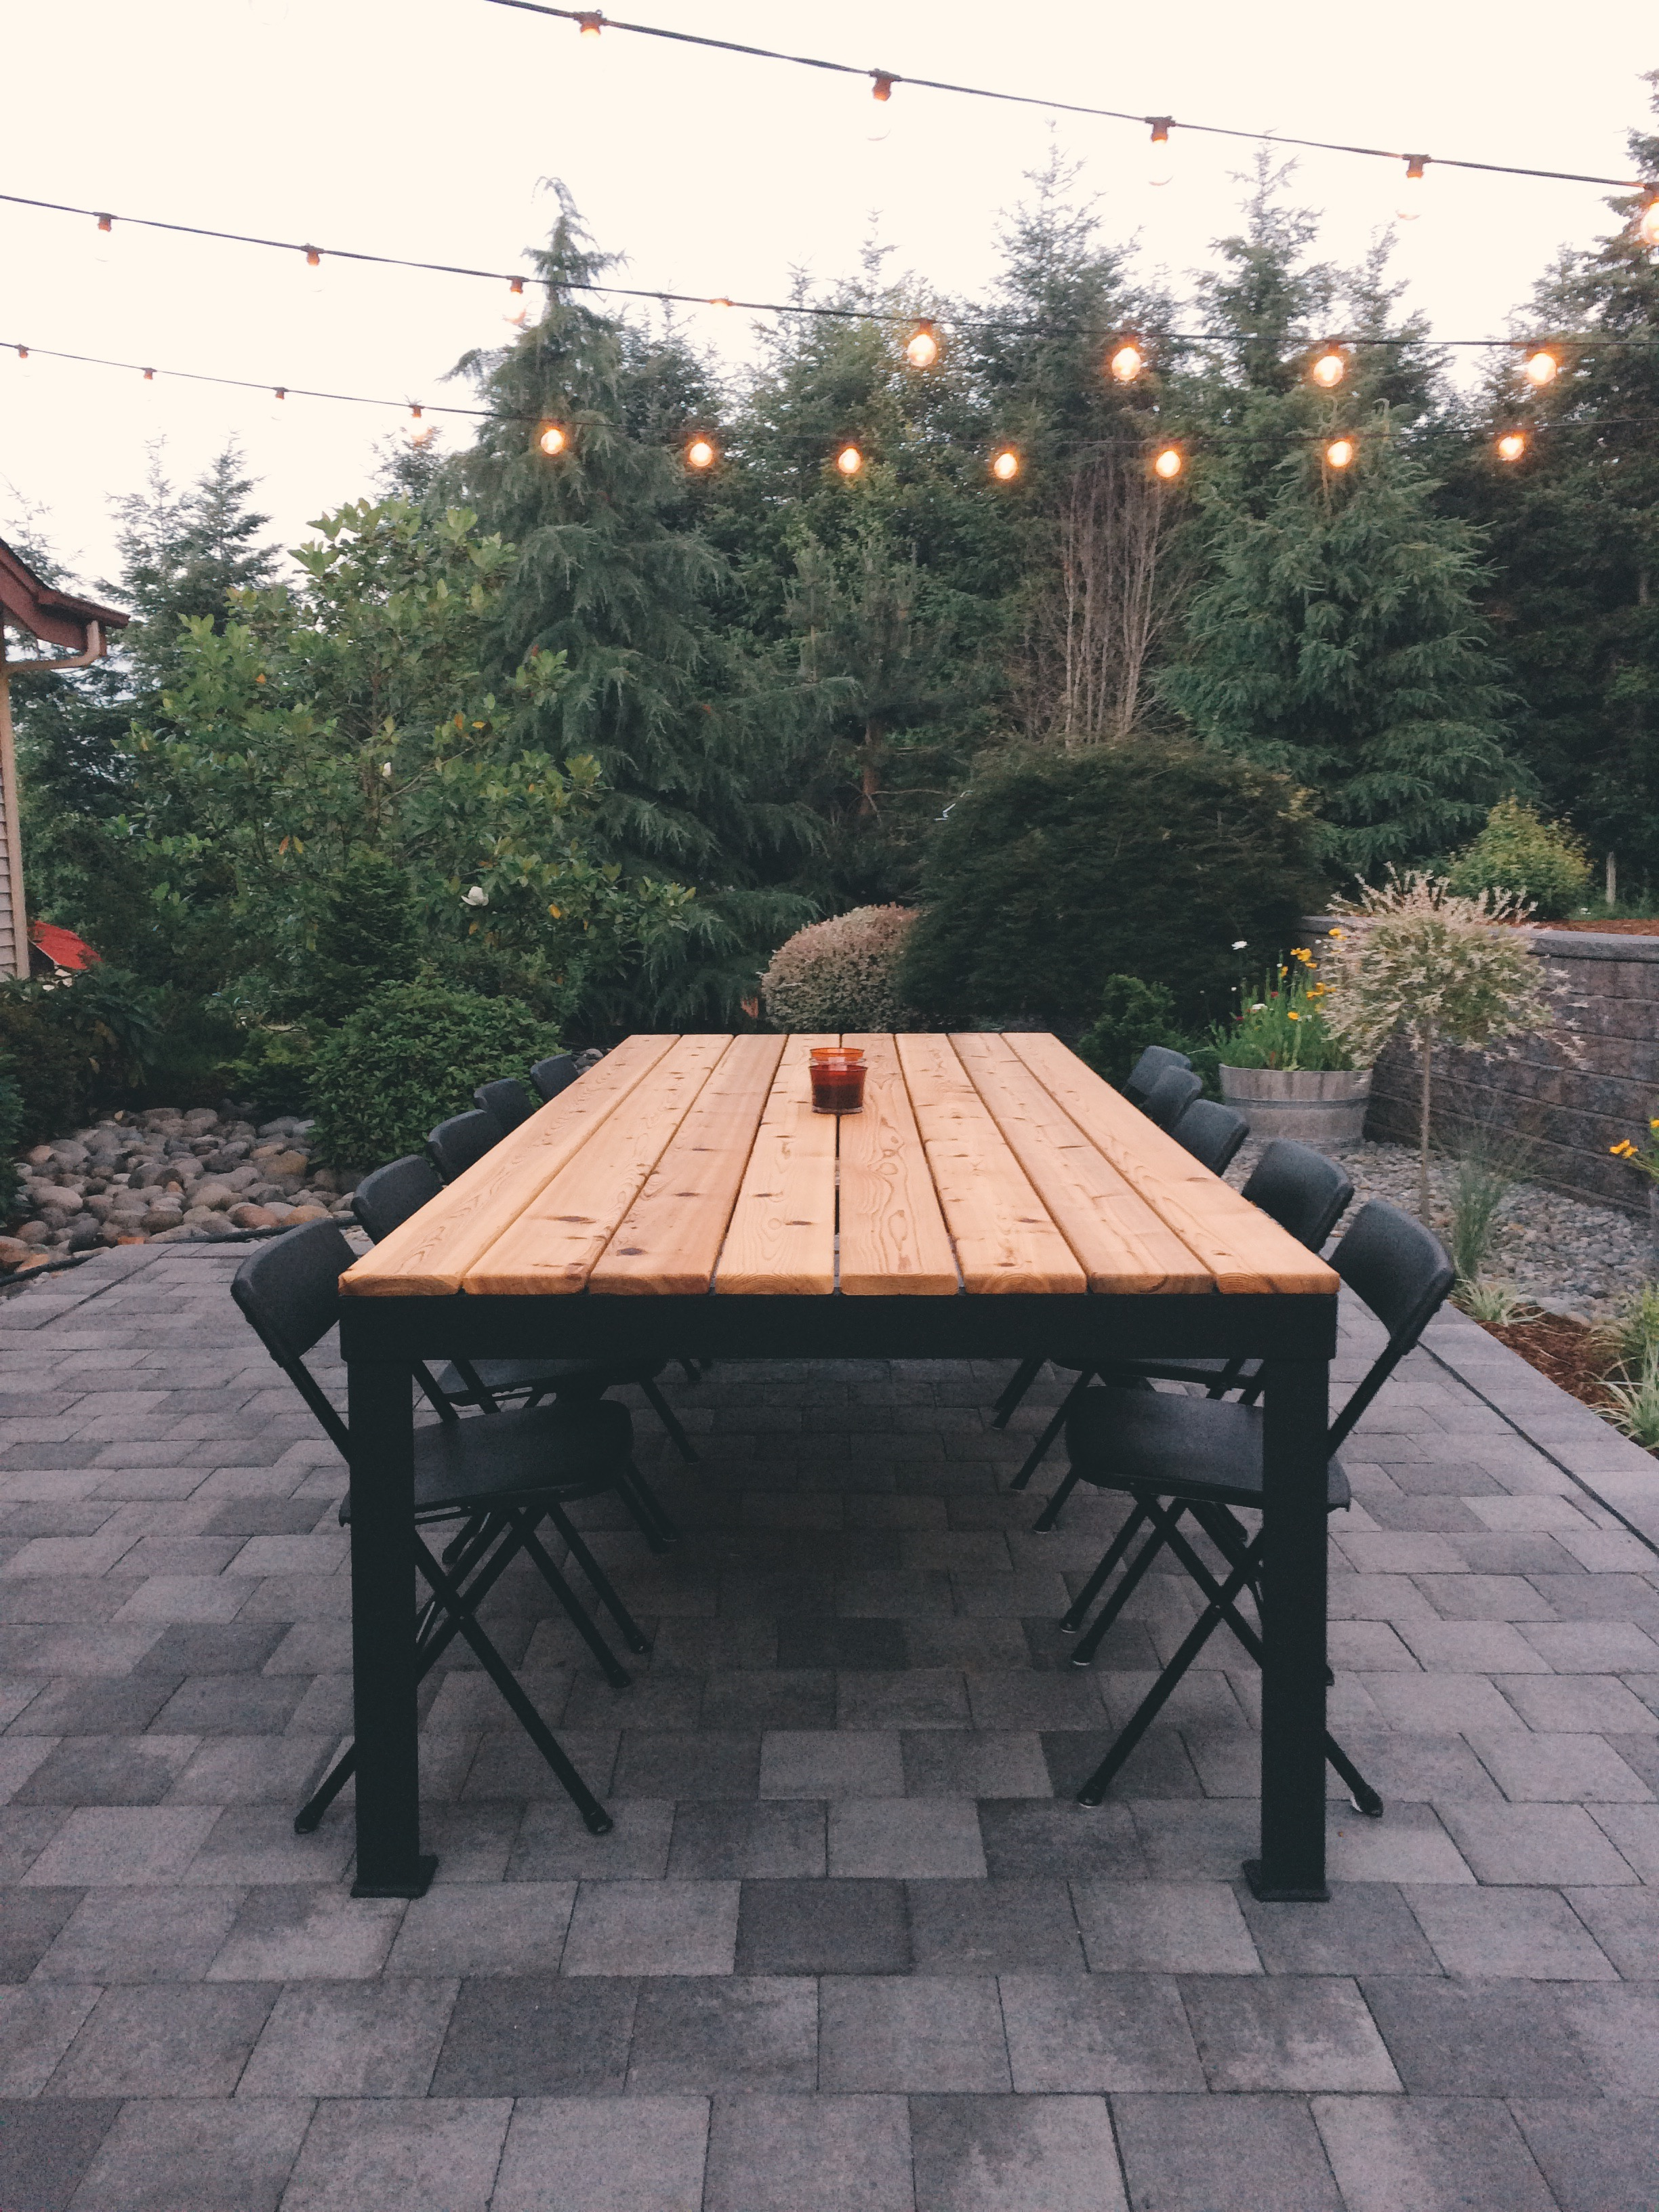 An outdoor dining room has a ten foot long, custom designed steel and wood table as its centerpiece.